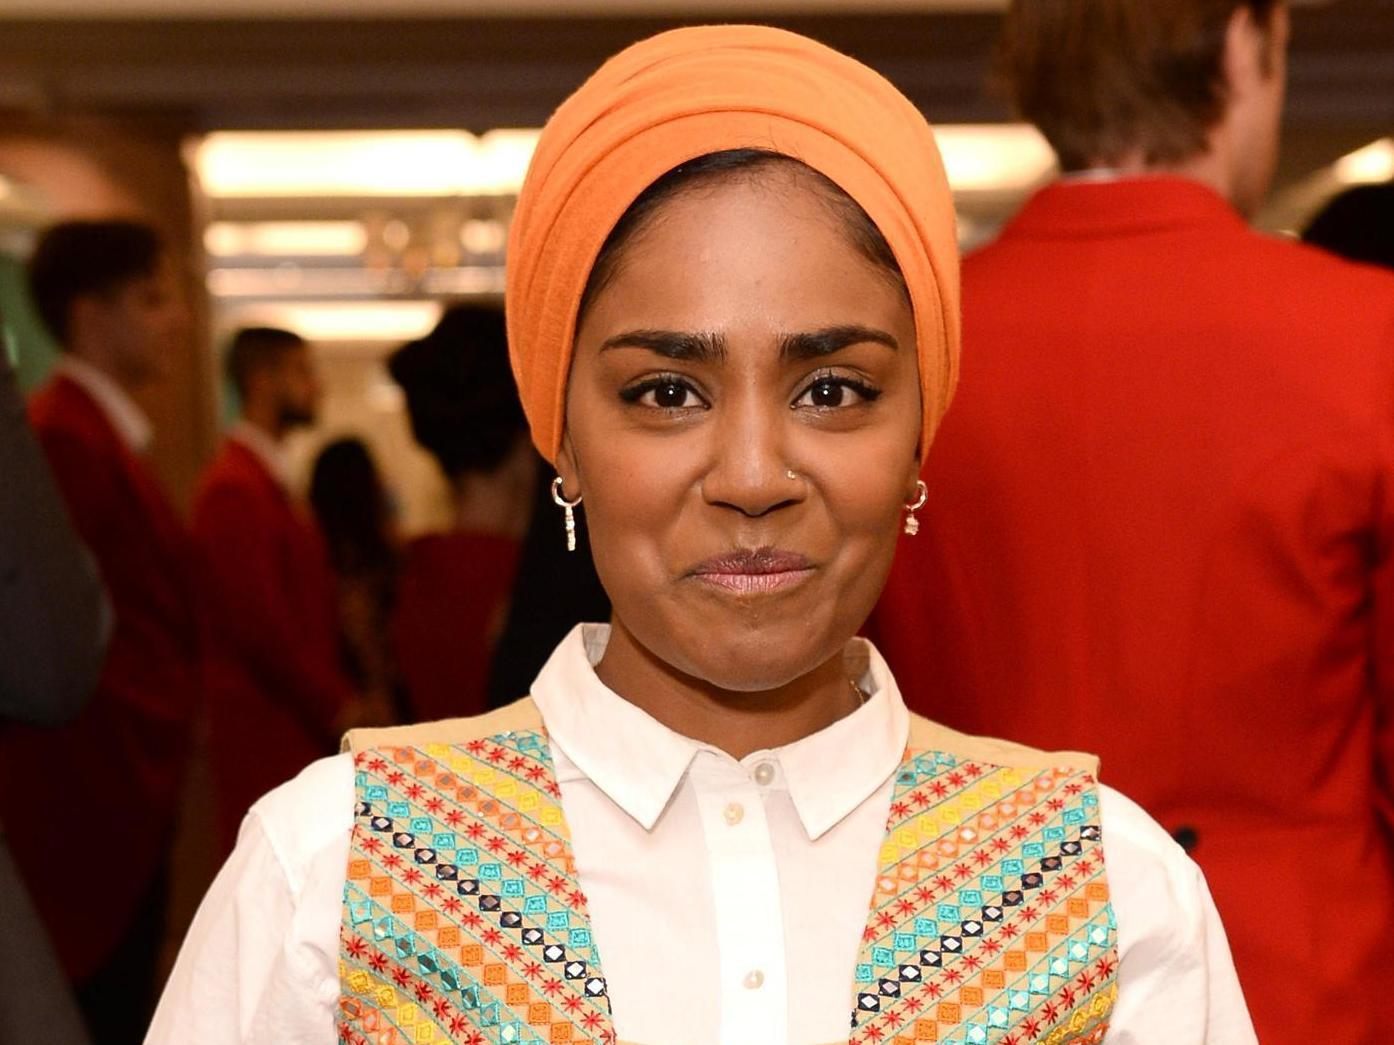 Nadiya Hussain says she's experienced more racism in last five years than ever before